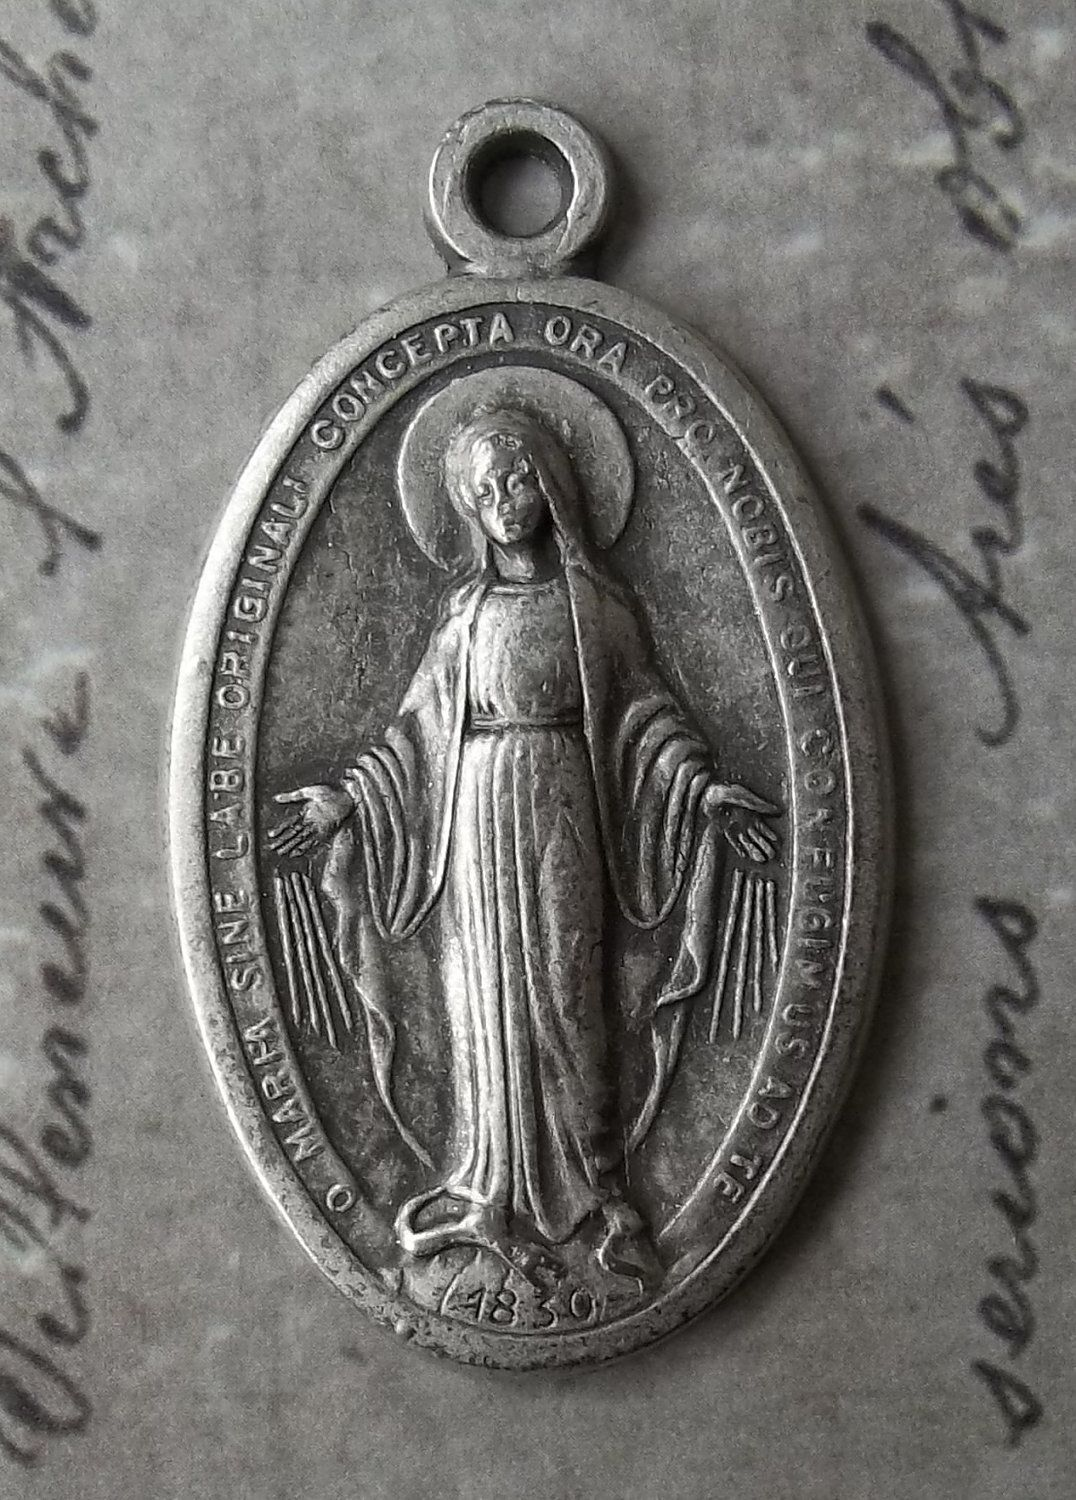 Large Burnished Oval Italian Miraculous Medal Of The Immaculate Conception 1830 Blessed Virgin Mary Mother Of God